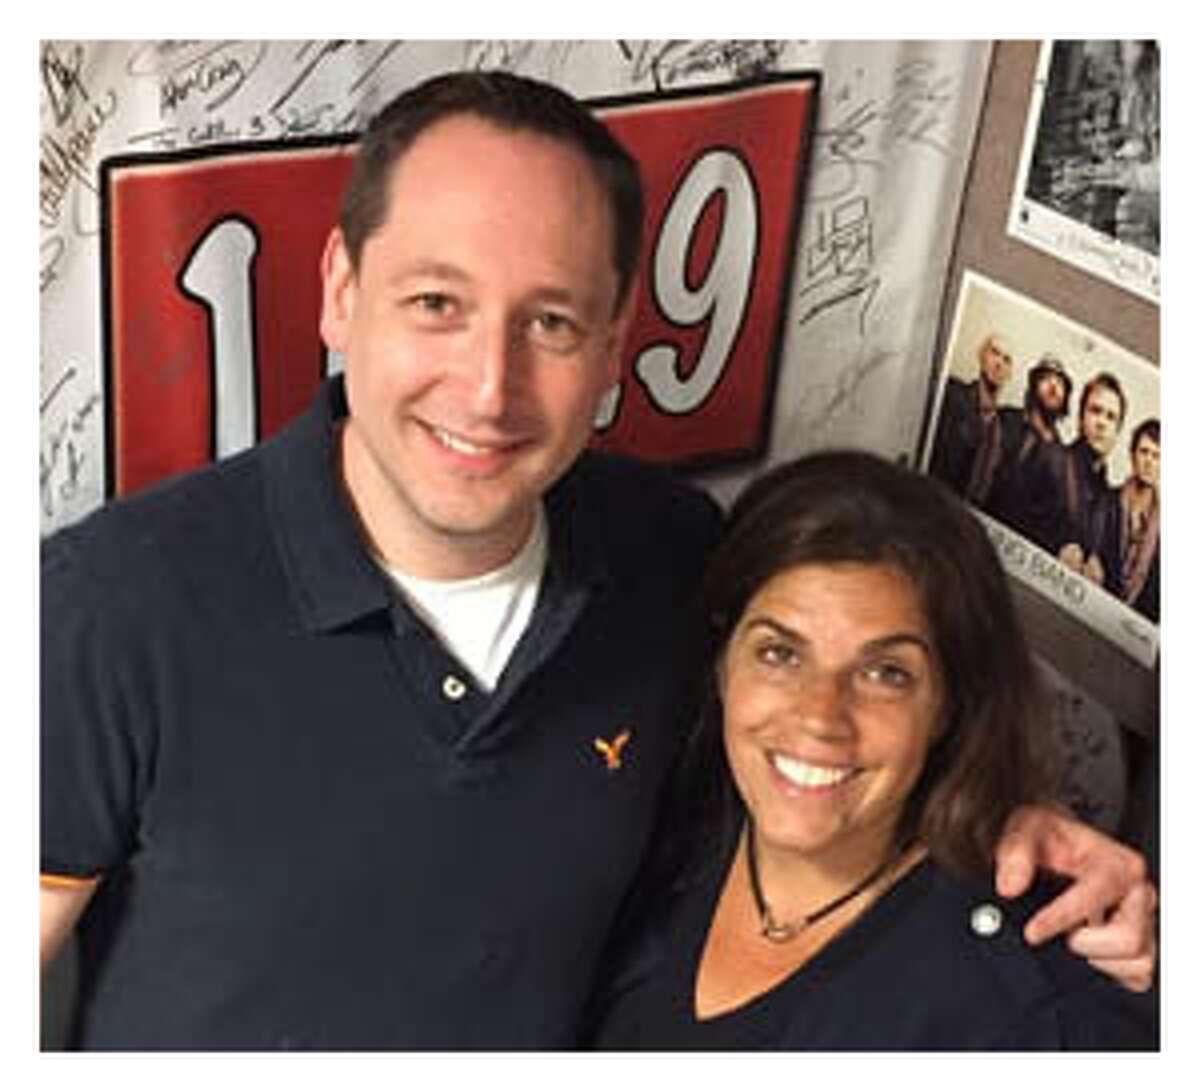 After six years, Dana Race is out as morning co-host at 100.9 The Cat, Albany Broadcasting's country station. Race's former on-air partner, Kevin Richards, is still on the air.